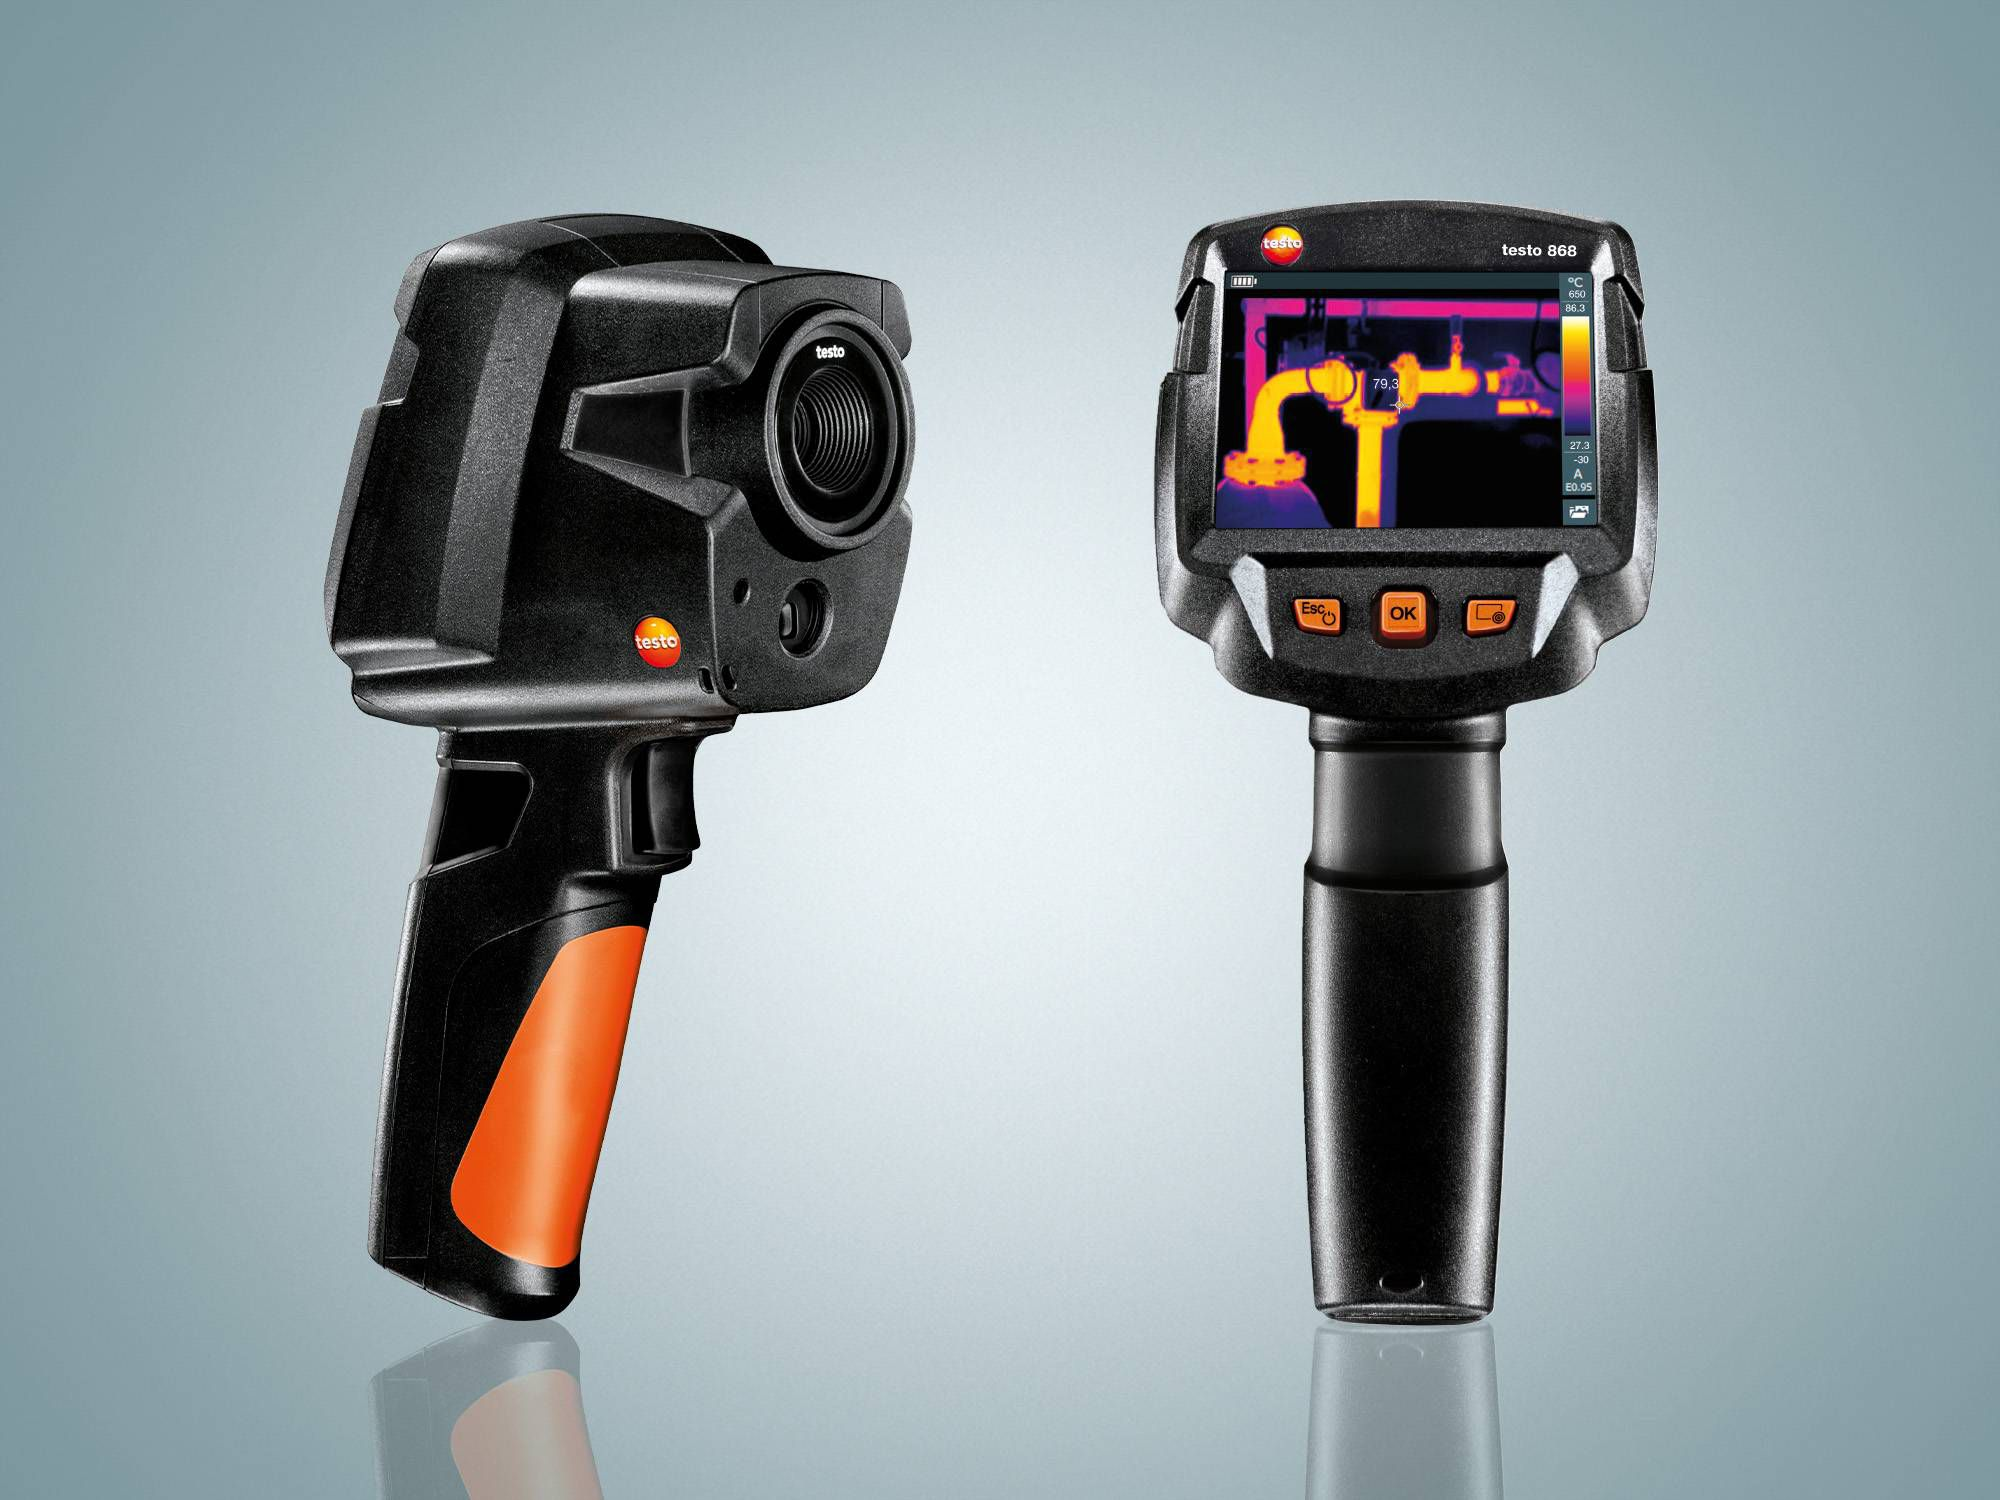 testo 868 thermal imager